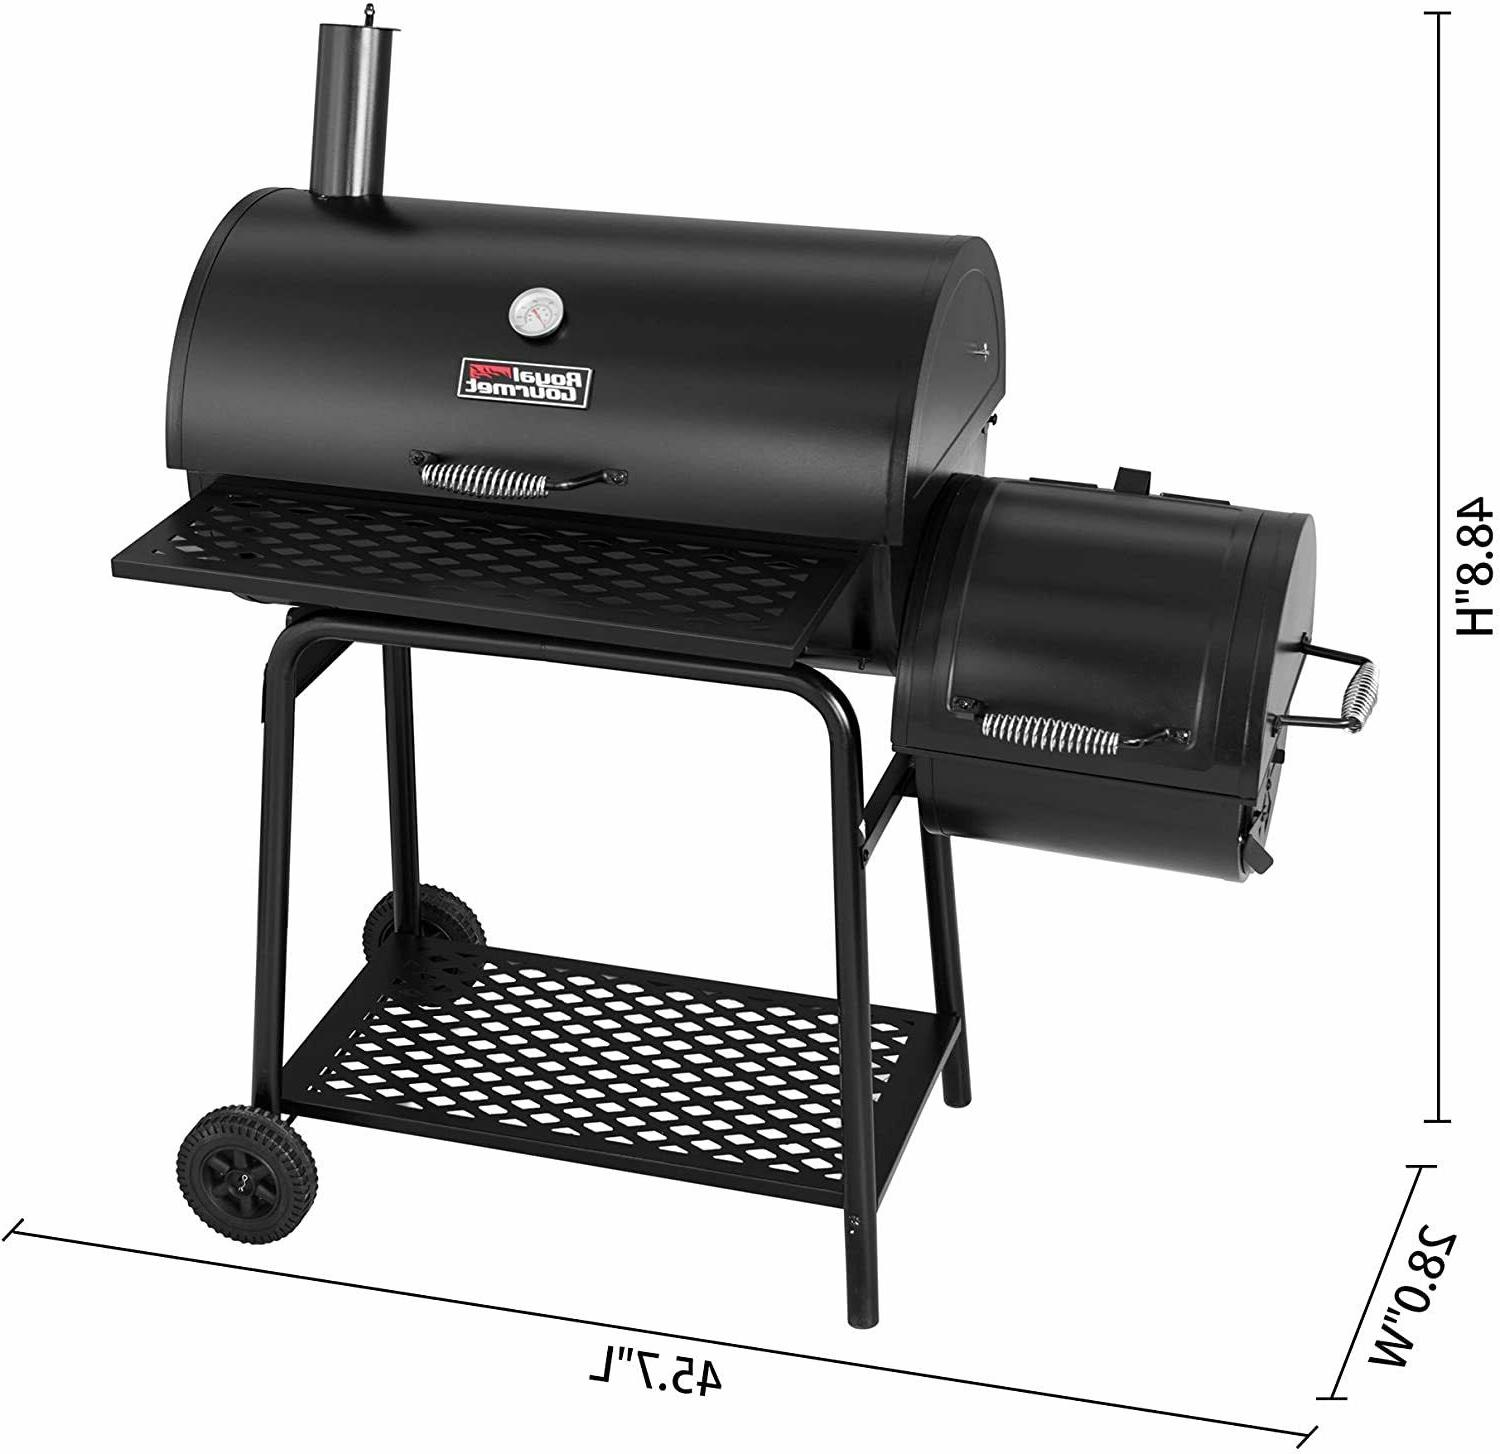 Royal Gourmet CC1830F Grill with Black